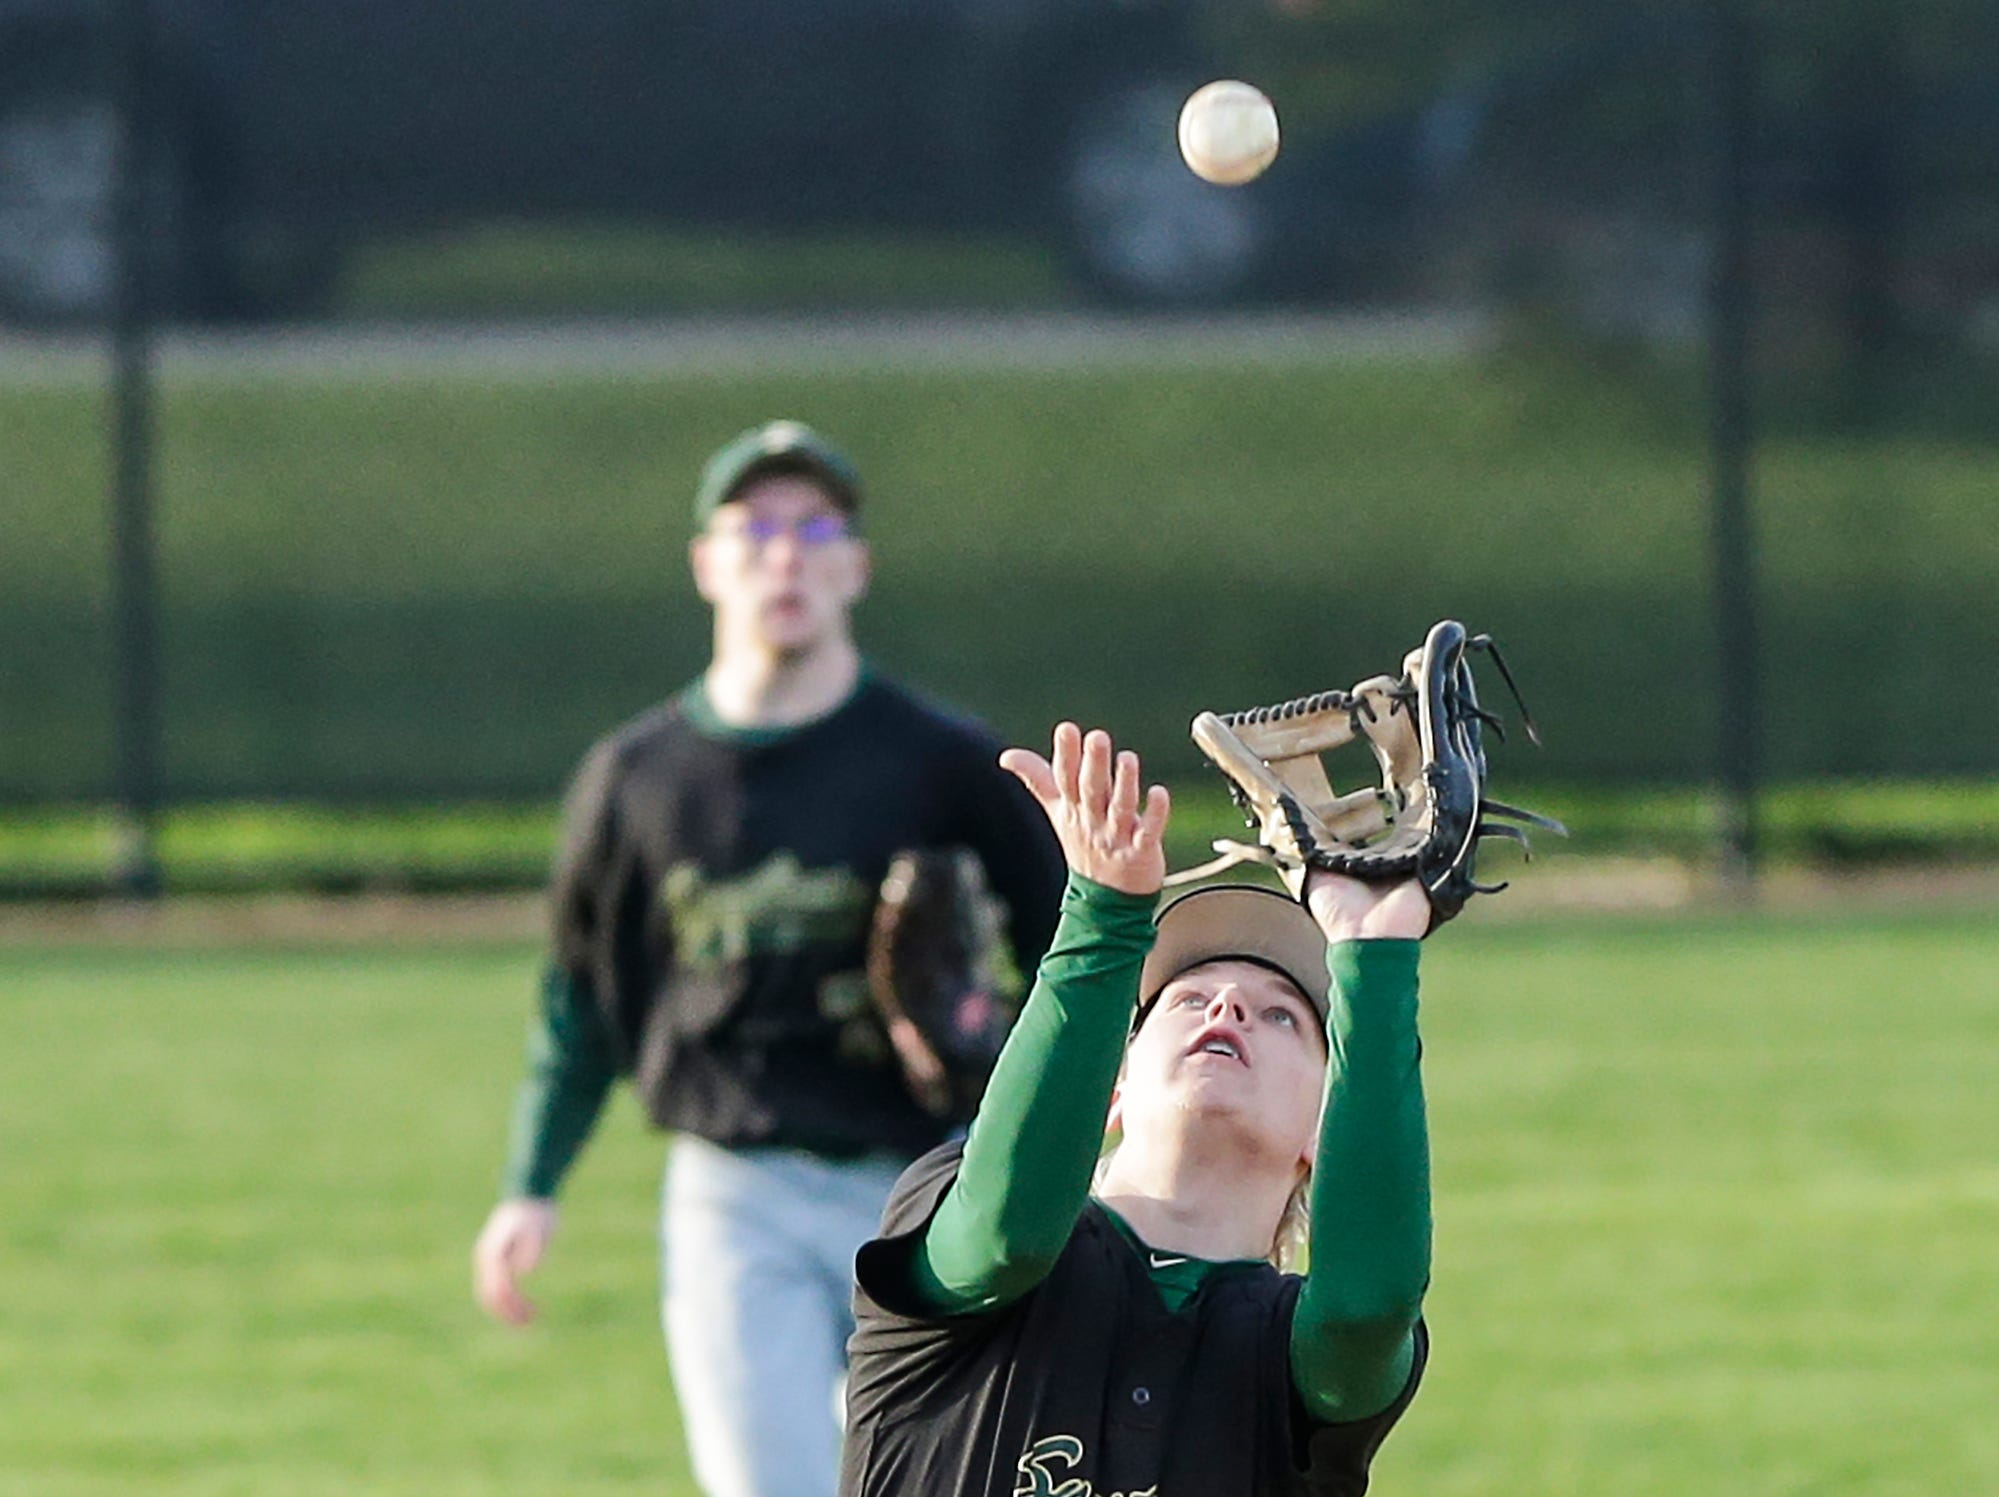 Laconia High School's Will Mattheis catches a fly ball Tuesday, May 7, 2019 against St Mary's Springs Academy during their game in Fond du Lac, Wis. Doug Raflik/USA TODAY NETWORK-Wisconsin